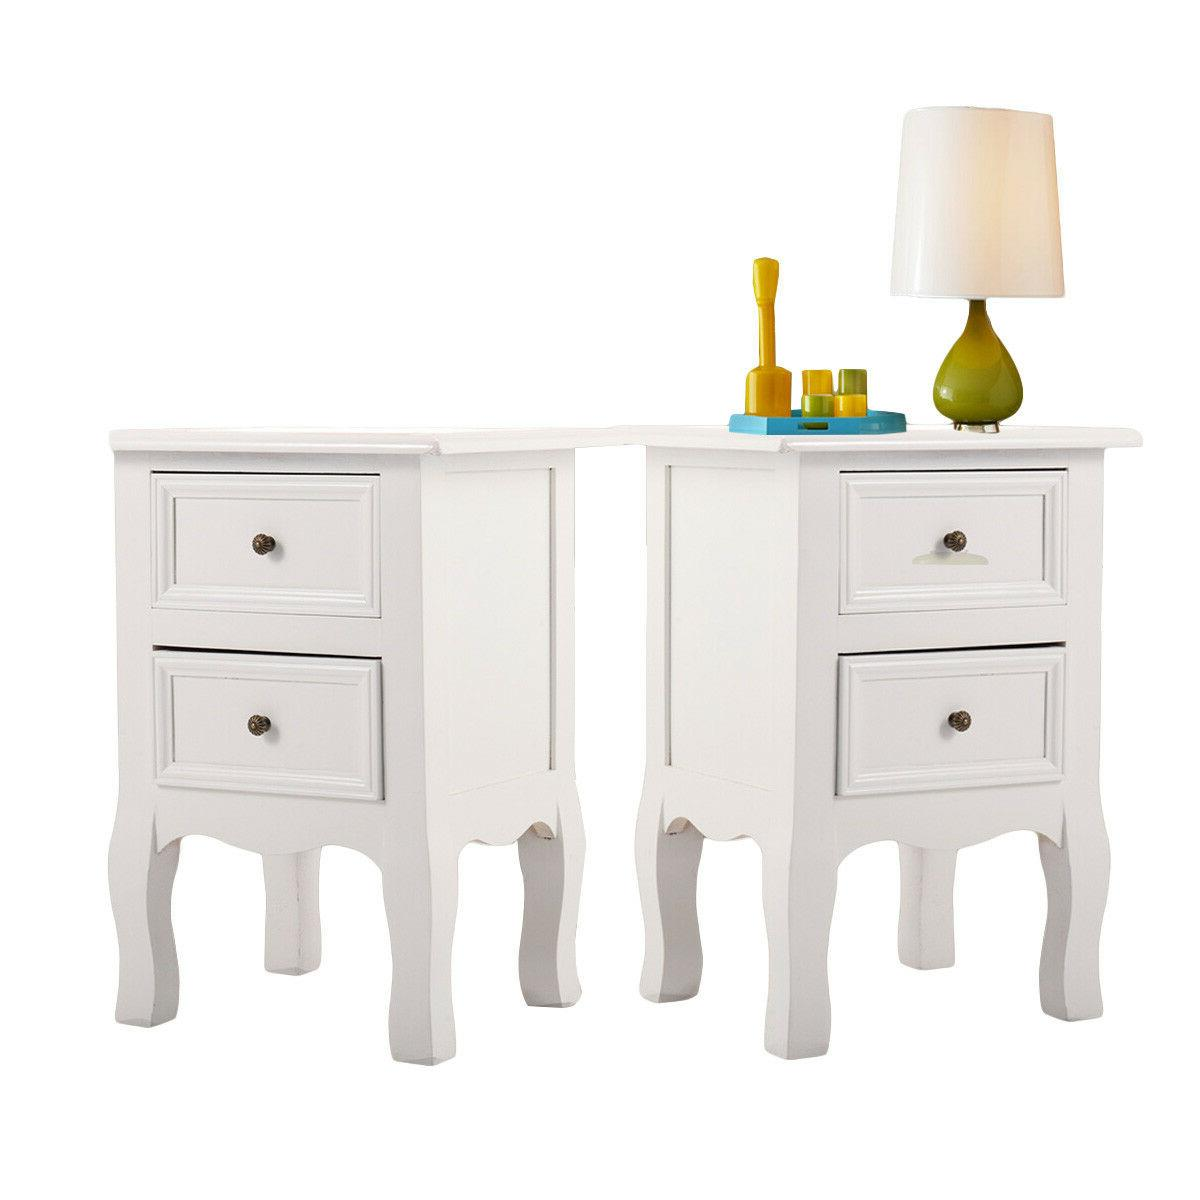 Set of 2 Drawers Table with White Wooden Bedside Door Storag